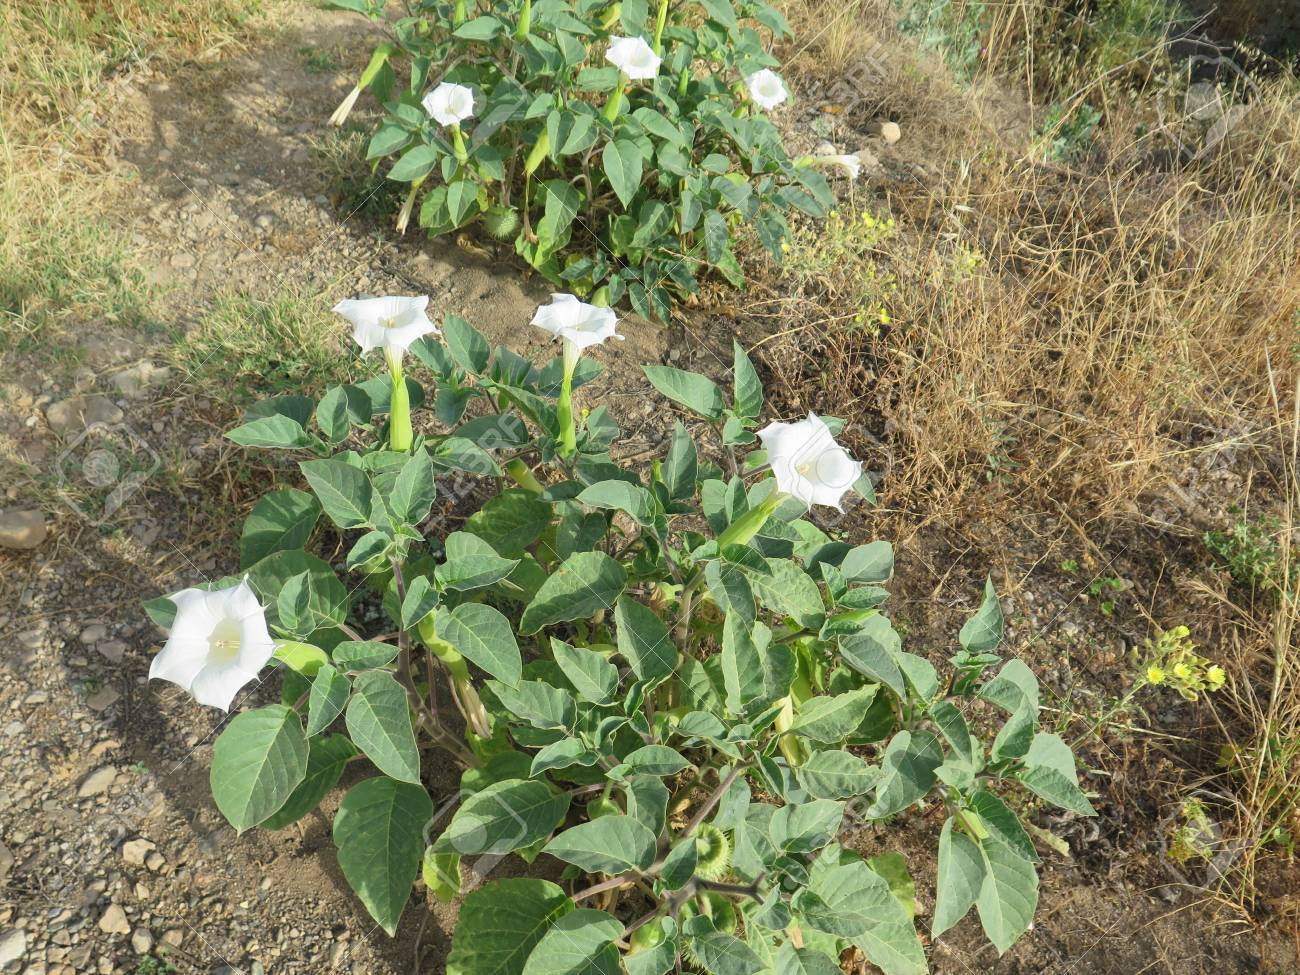 White Datura Flower On A Background Of Foliage In Alora Countryside